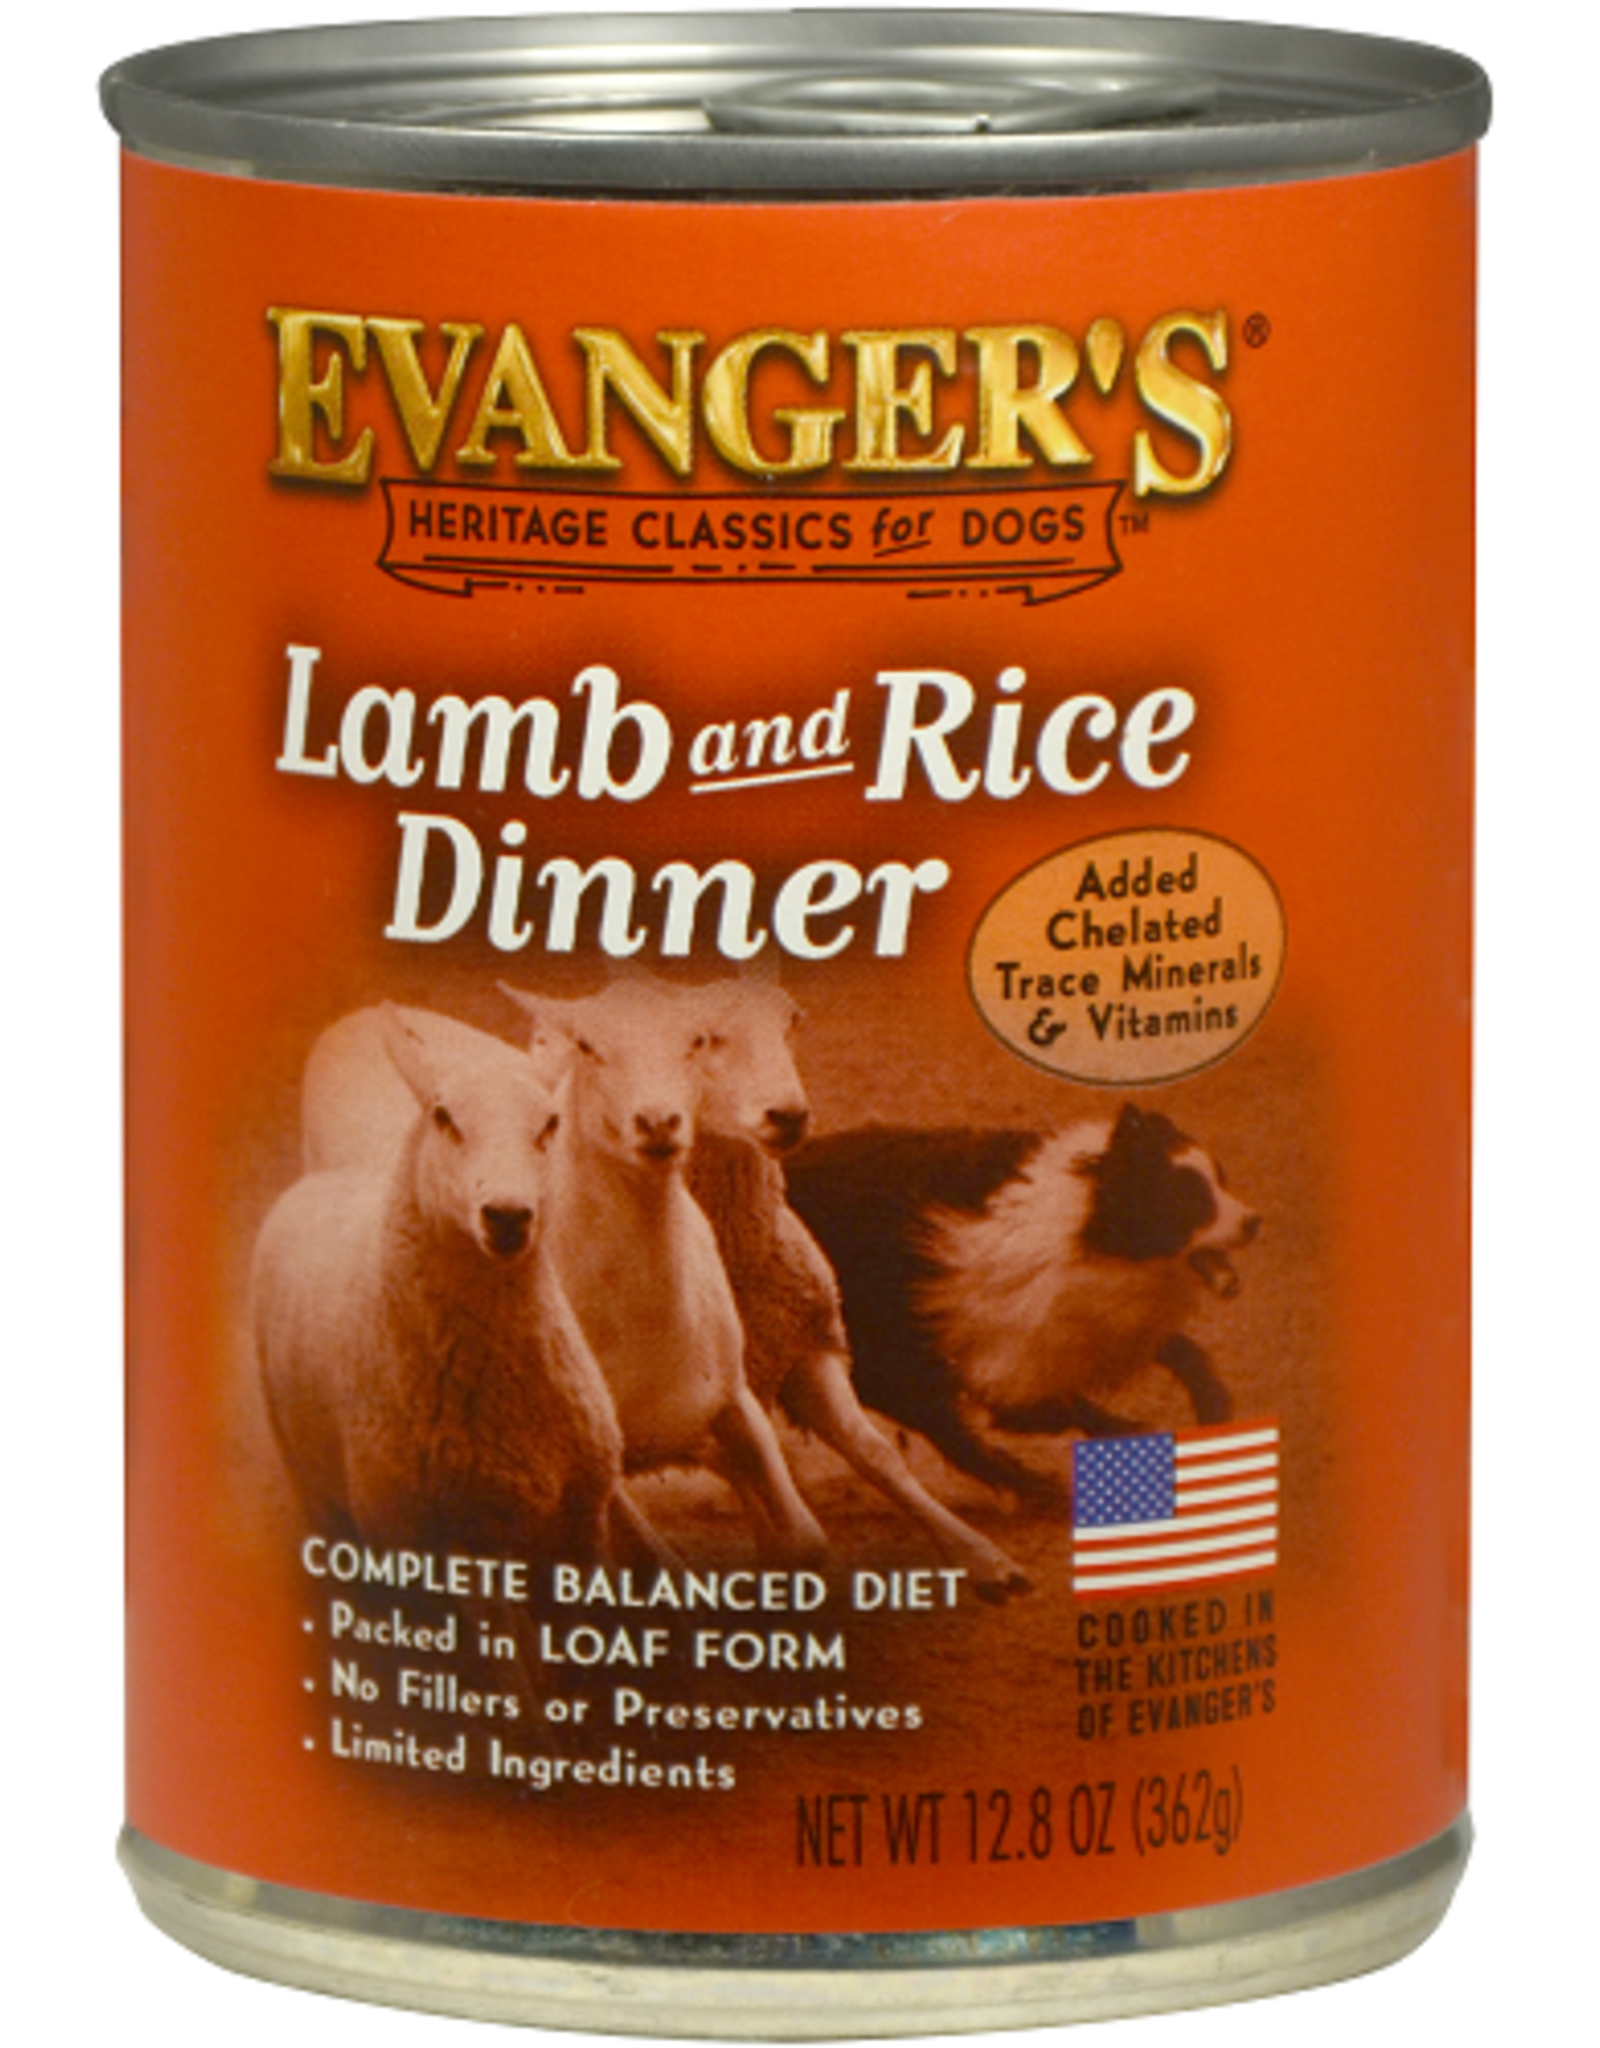 EVANGER'S EVANGERS CLASSIC LAMB & RICE 13OZ CAN